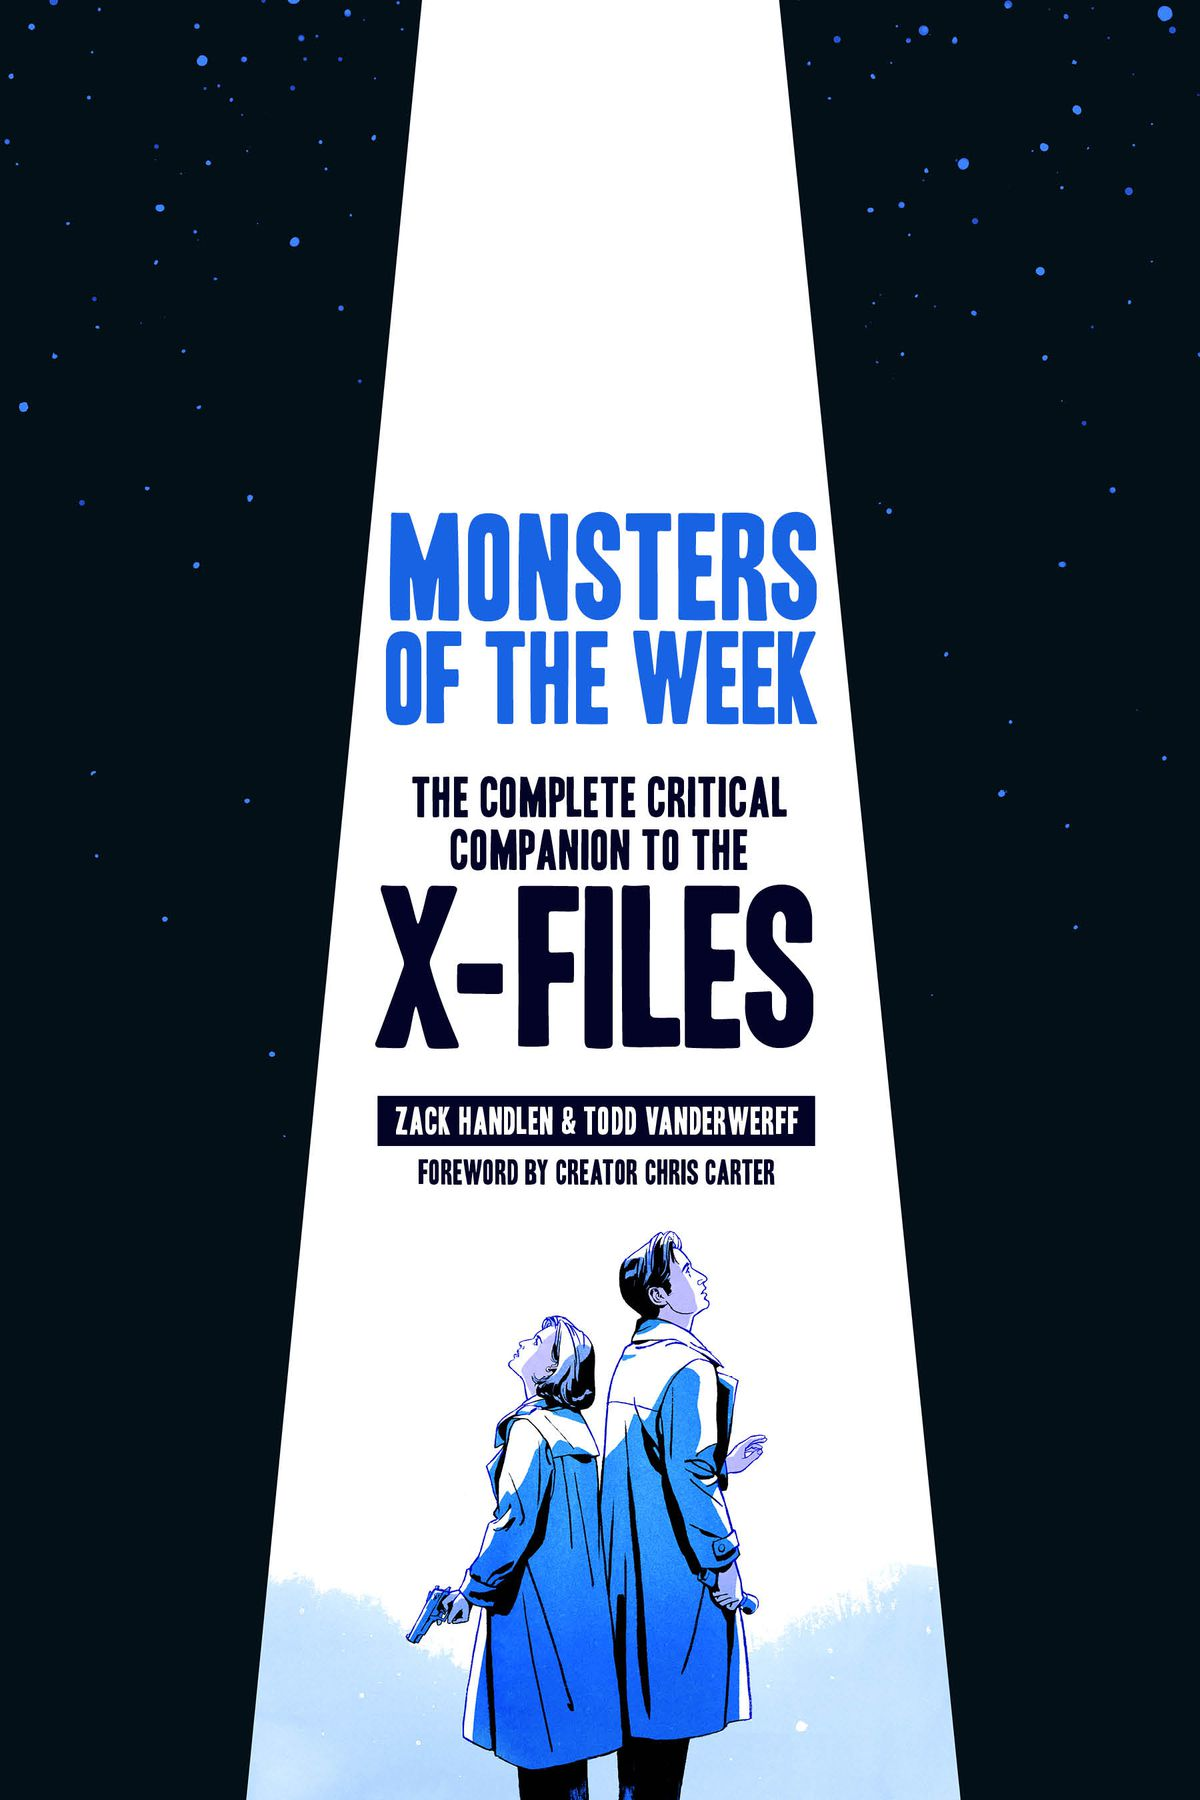 The cover of Monsters of the Week: The Complete Critical Companion to The X-Files